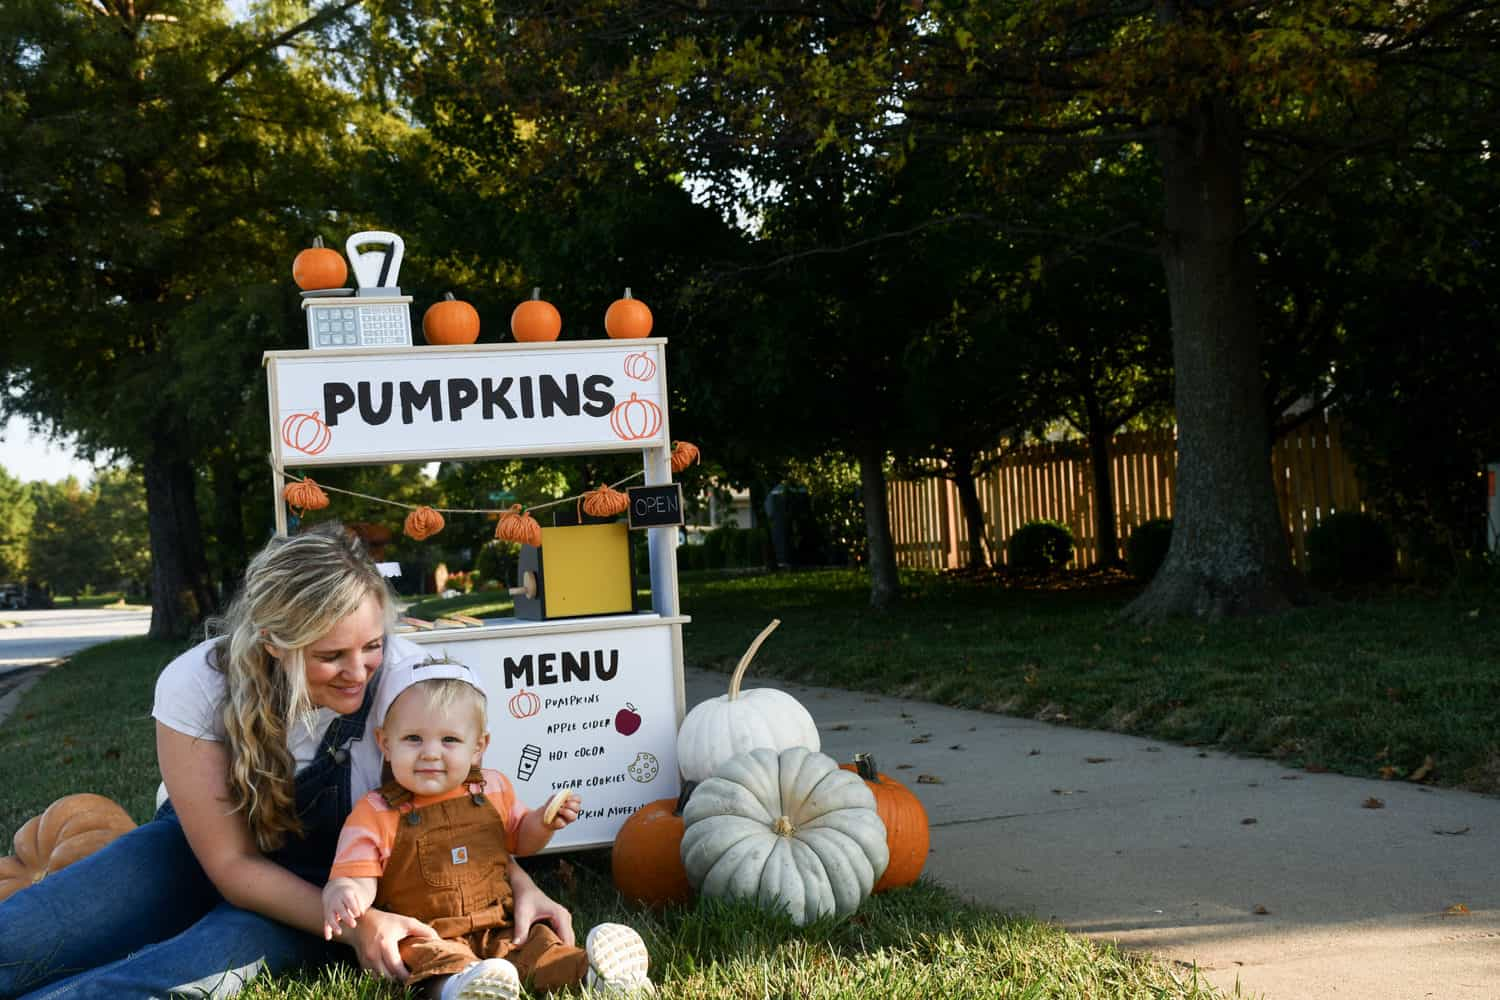 Mom and child sitting in front of pumpkin stand.